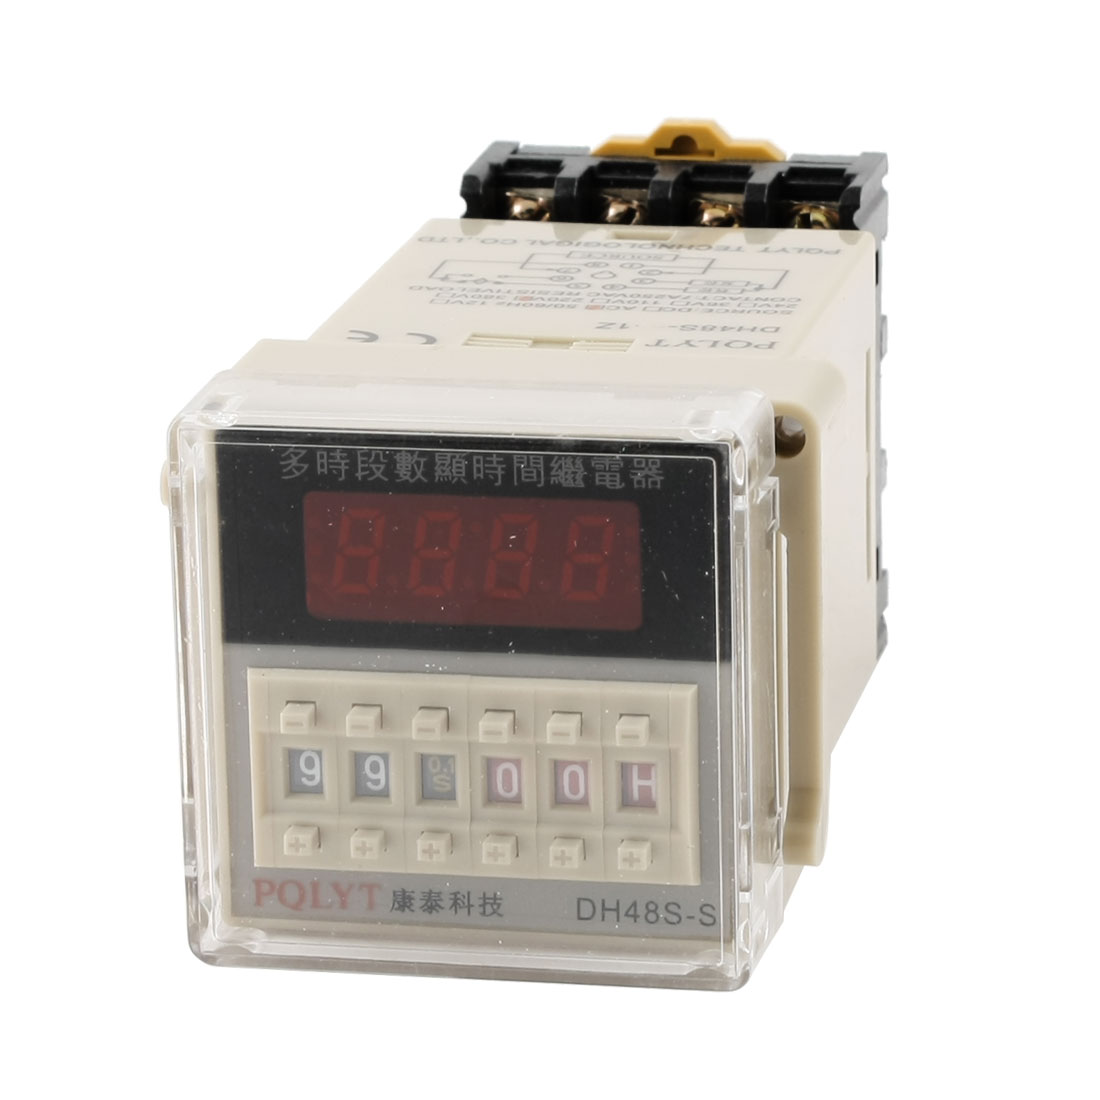 DH48S/S AC 220V 0.1S-99H Plug in Socket 35mm DIN Rail Mount DPDT 8Pin Digital Display Time Timer Delay Relay